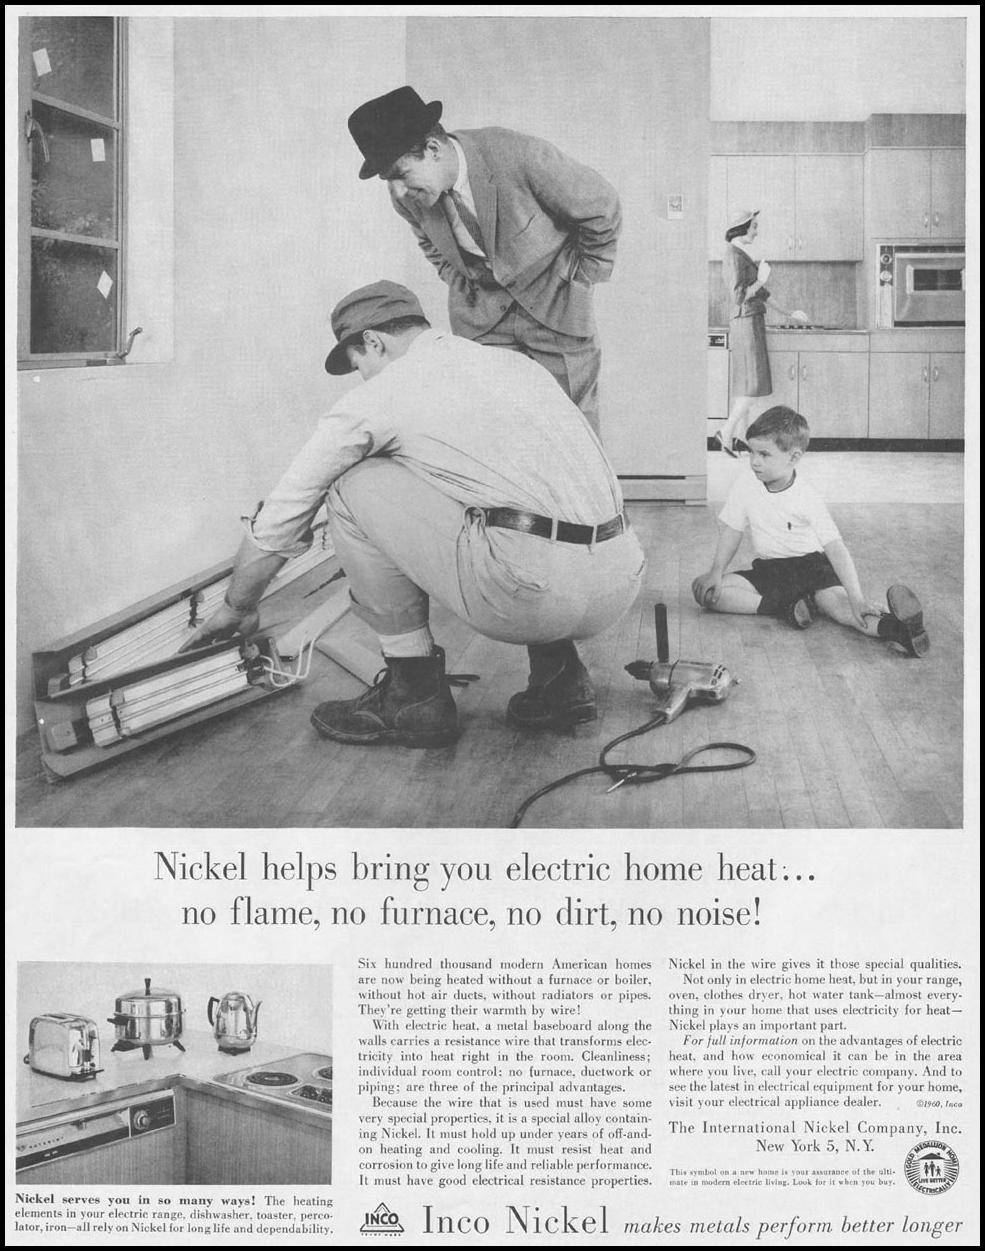 INCO NICKEL SATURDAY EVENING POST 06/11/1960 p. 23